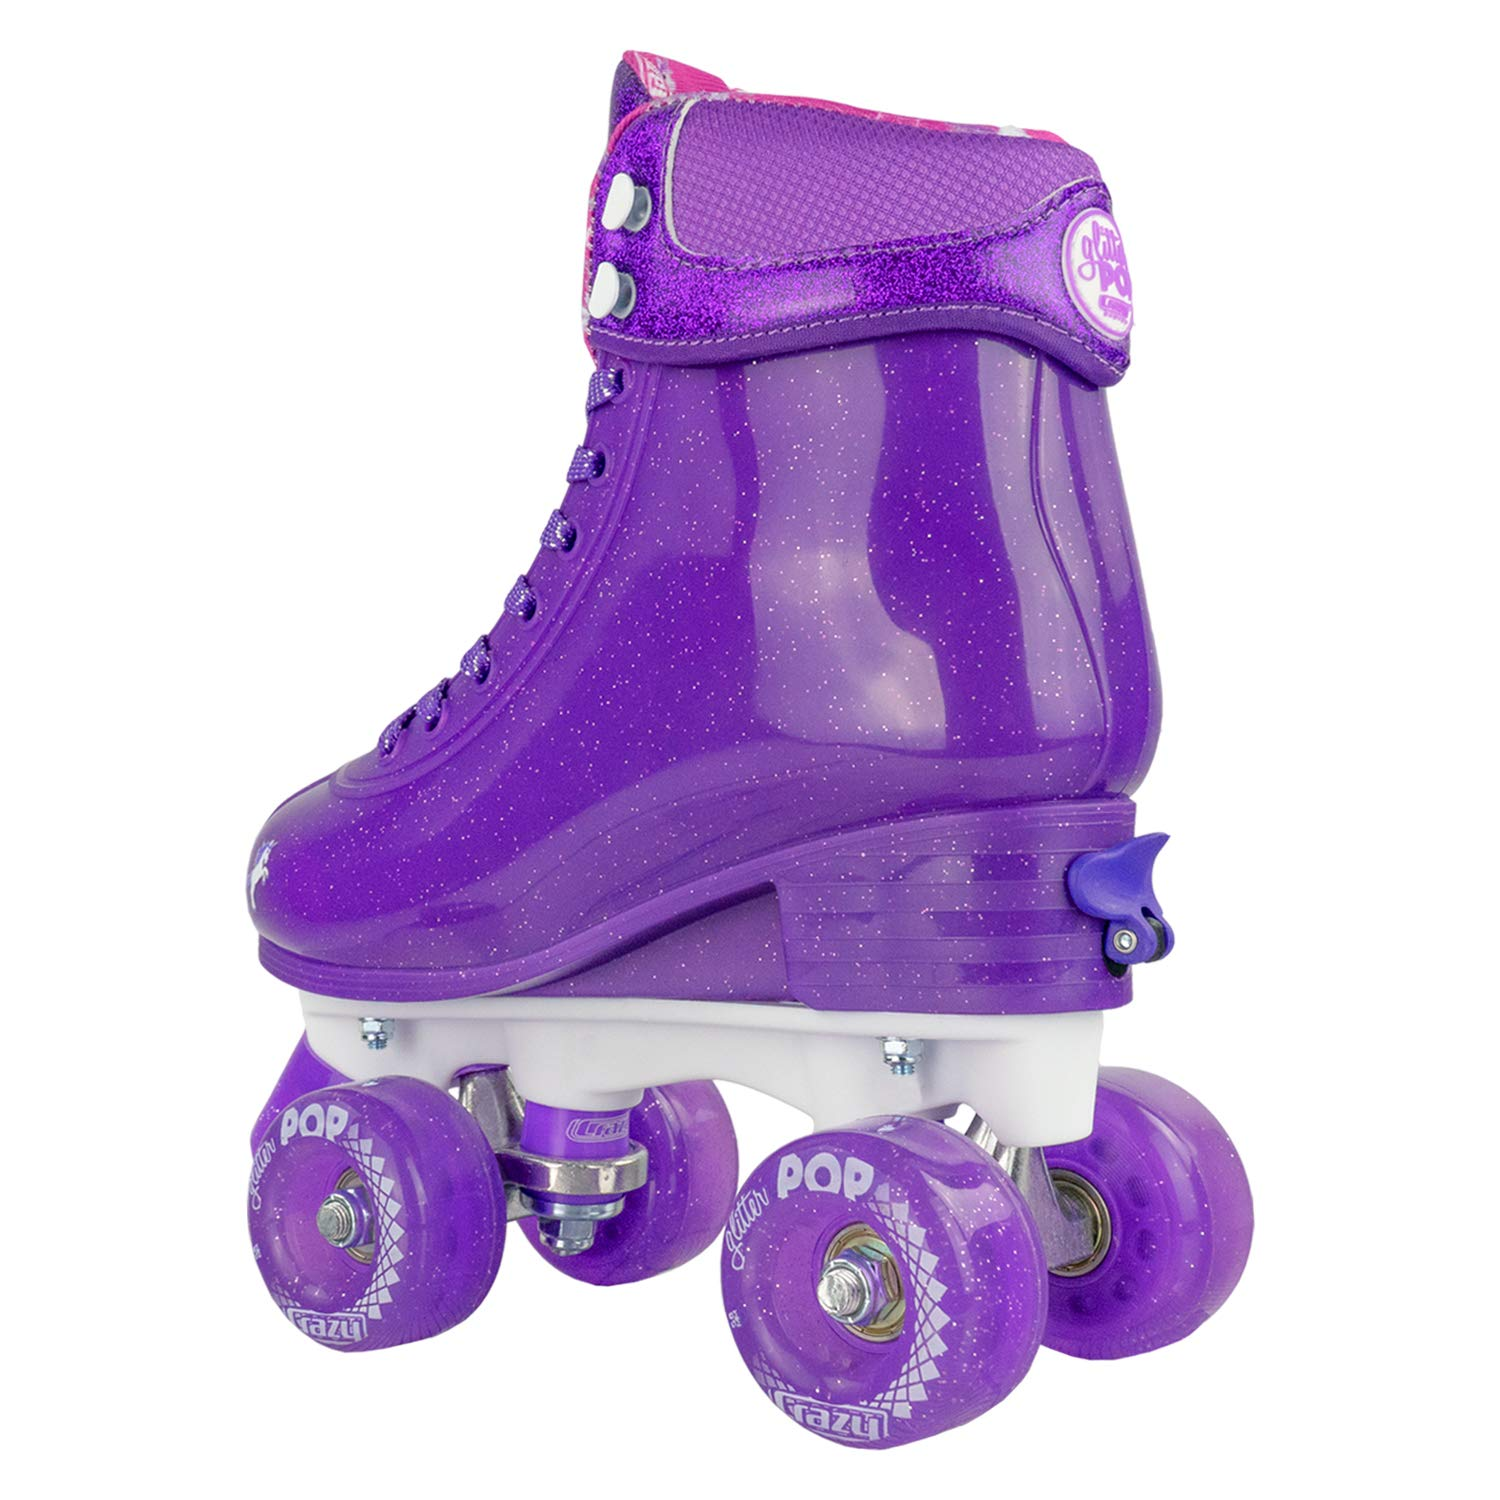 Crazy Skates Glitter POP Adjustable Roller Skates for Girls and Boys | Size Adjustable Quad Skates That Fit 4 Shoe Sizes | Purple (Sizes 3-6) by Crazy Skates (Image #7)